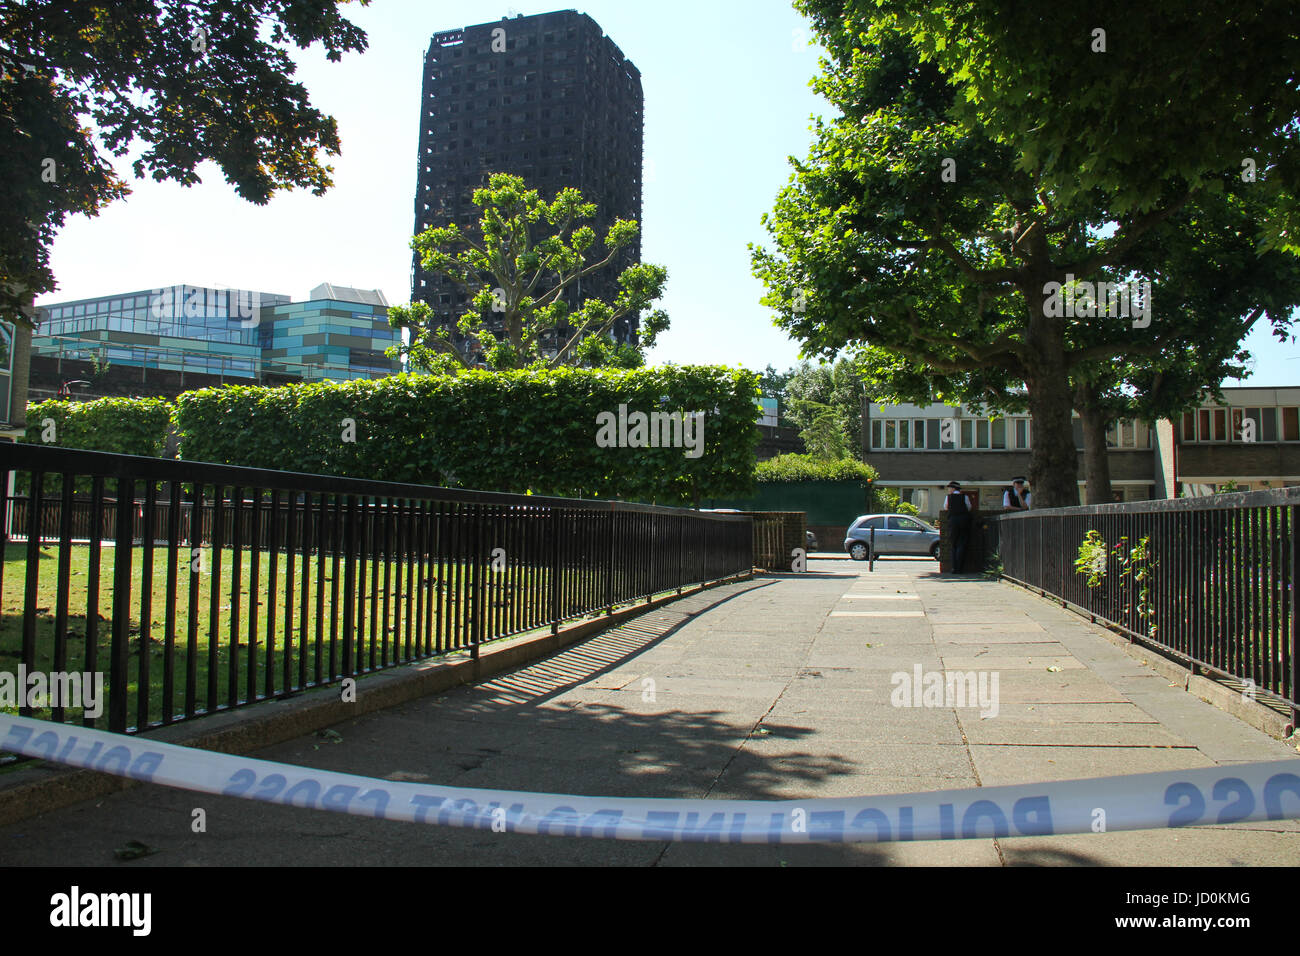 London, UK. 16th June, 2017. Police offices stand on guard along a cordoned area around the charred remains of the - Stock Image